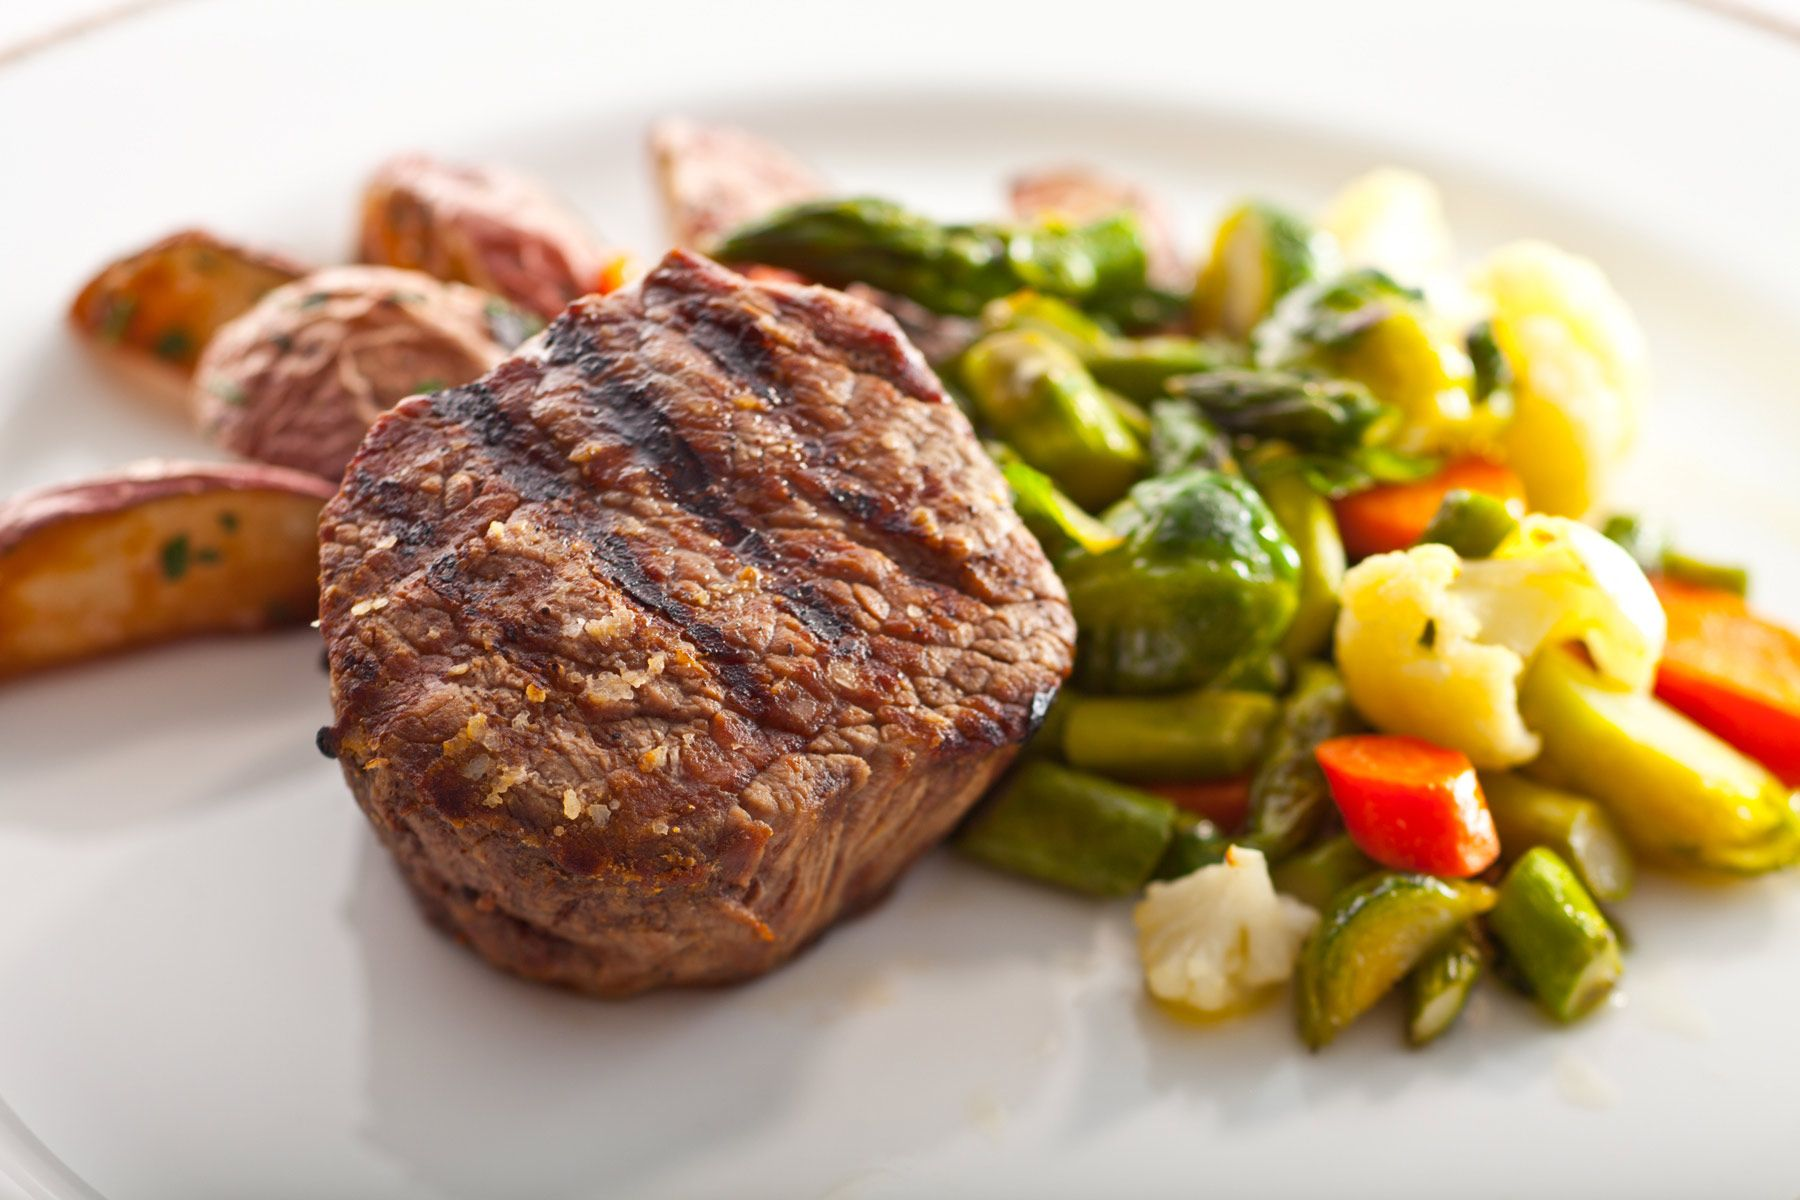 Filet-Mignon-wtih-vegetable-medle-and-fingerling-potatoes-by-Chef-Michael-Garbin-Uniion-League-of-Chicago.jpg